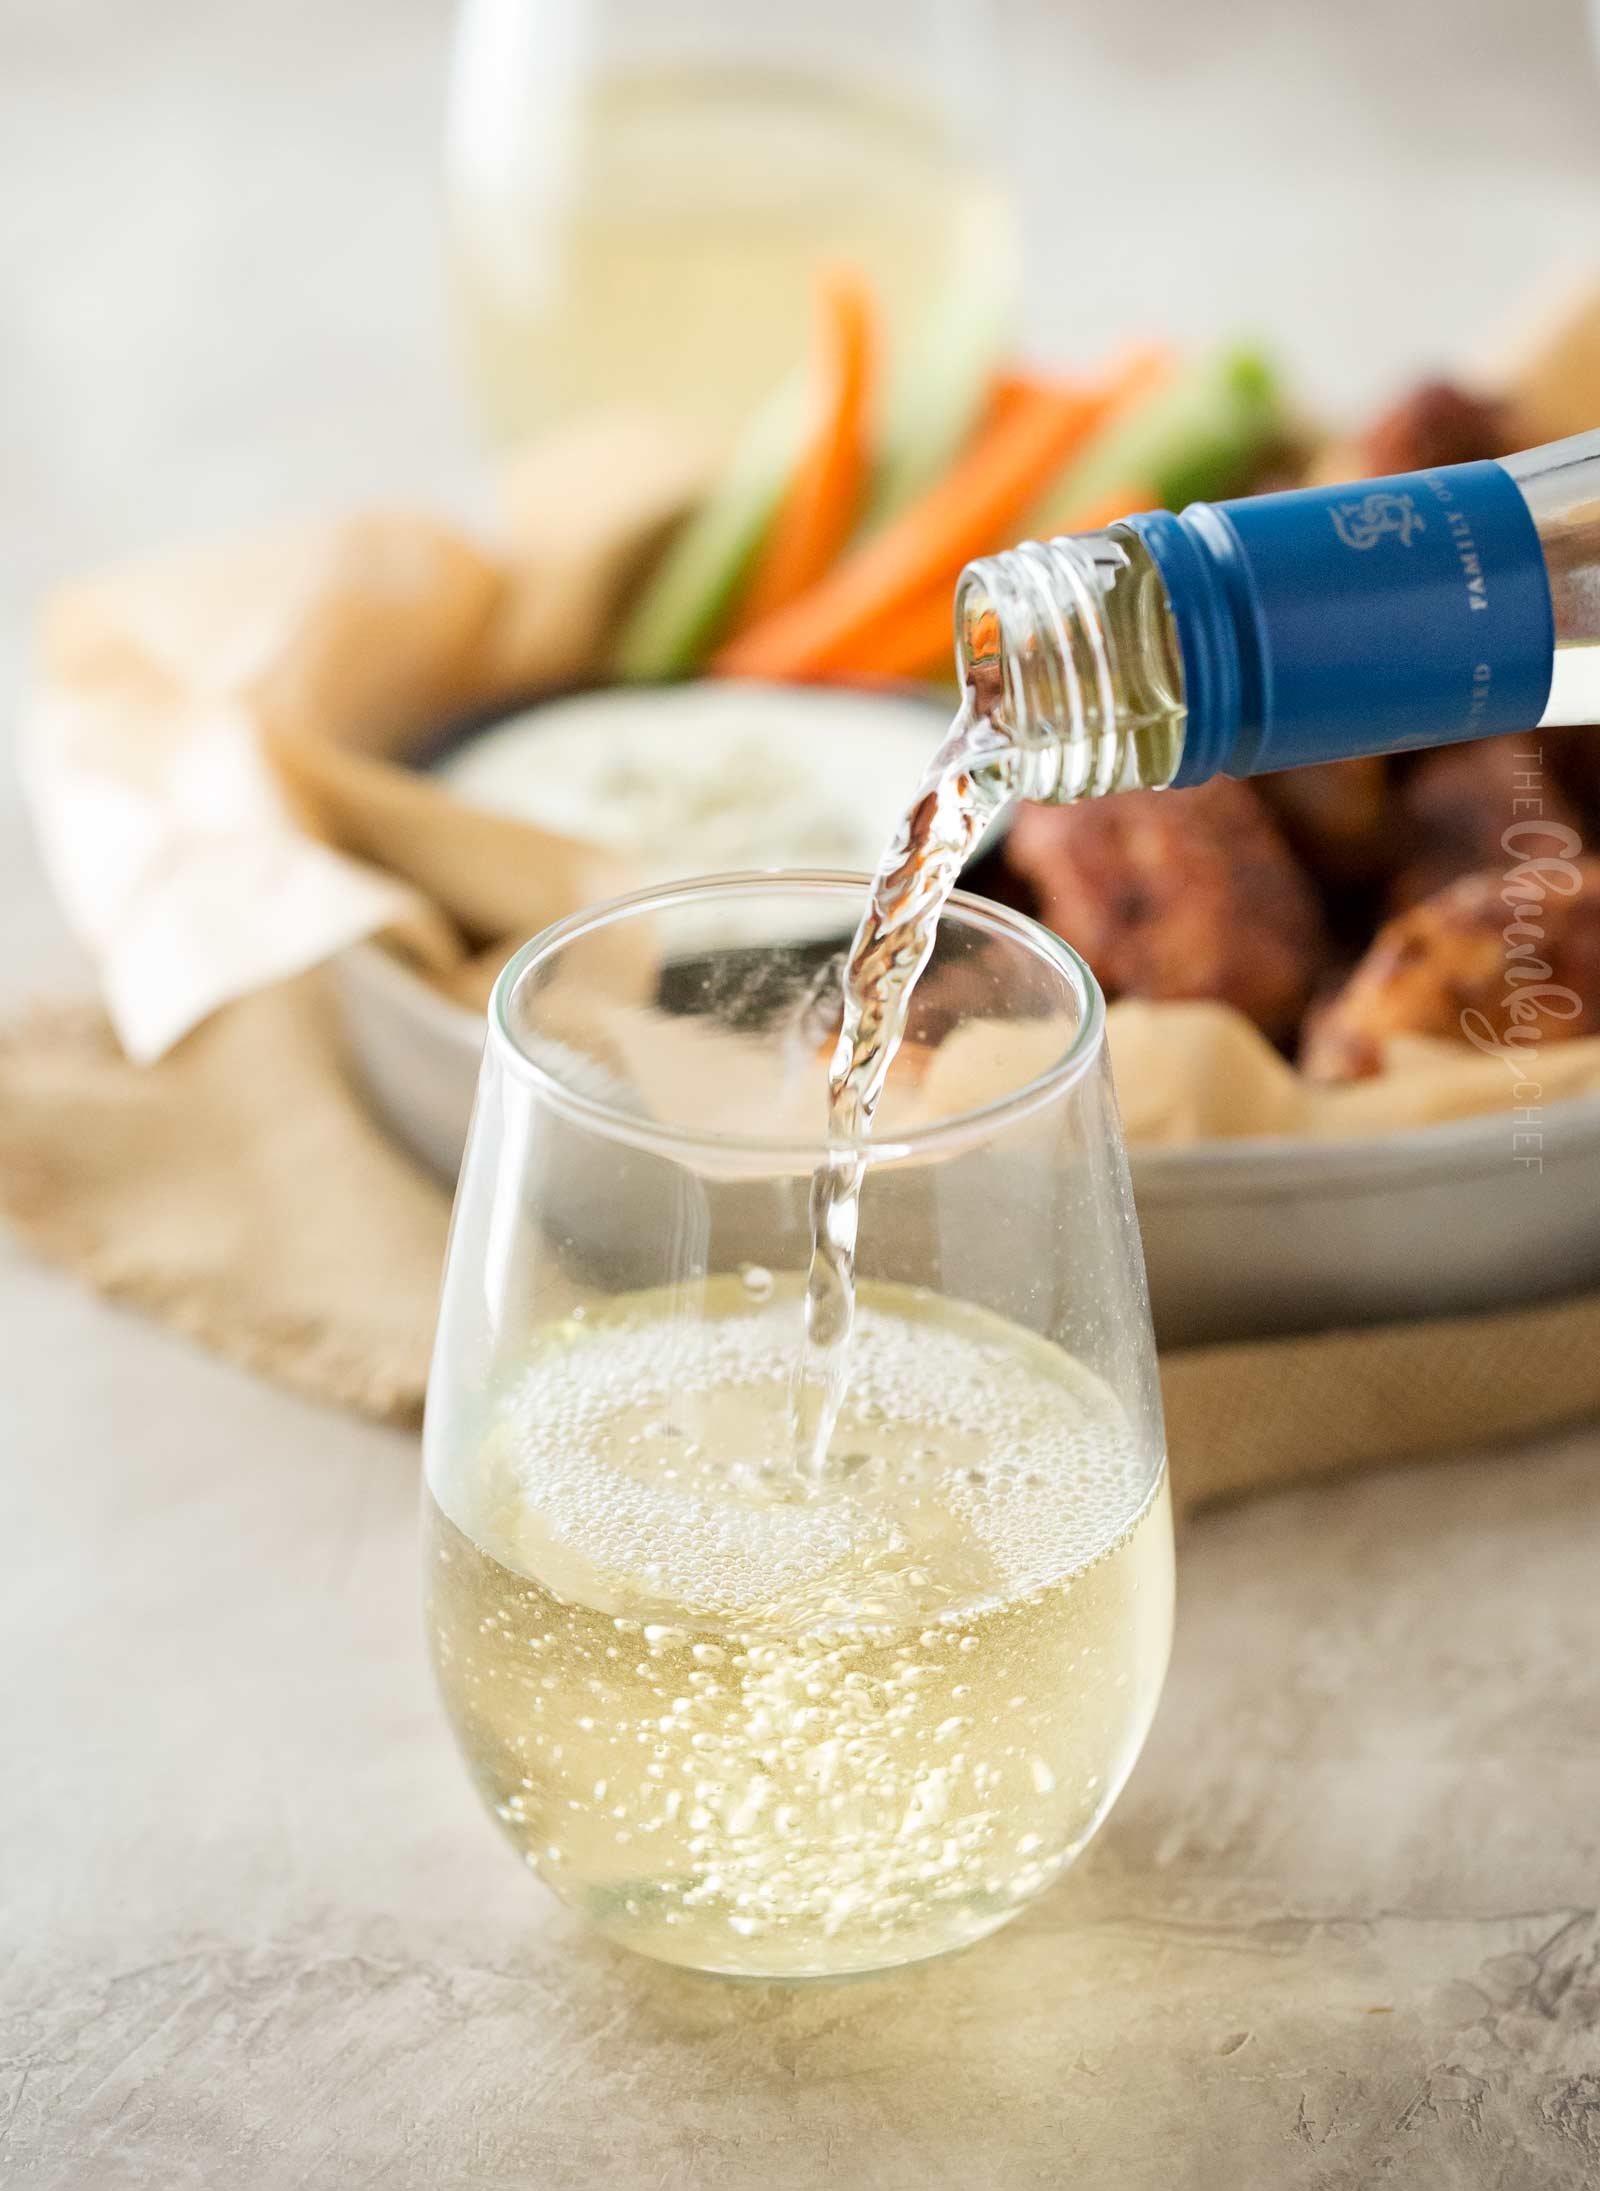 Ice cold glass of Riesling goes great with baked chicken wings!